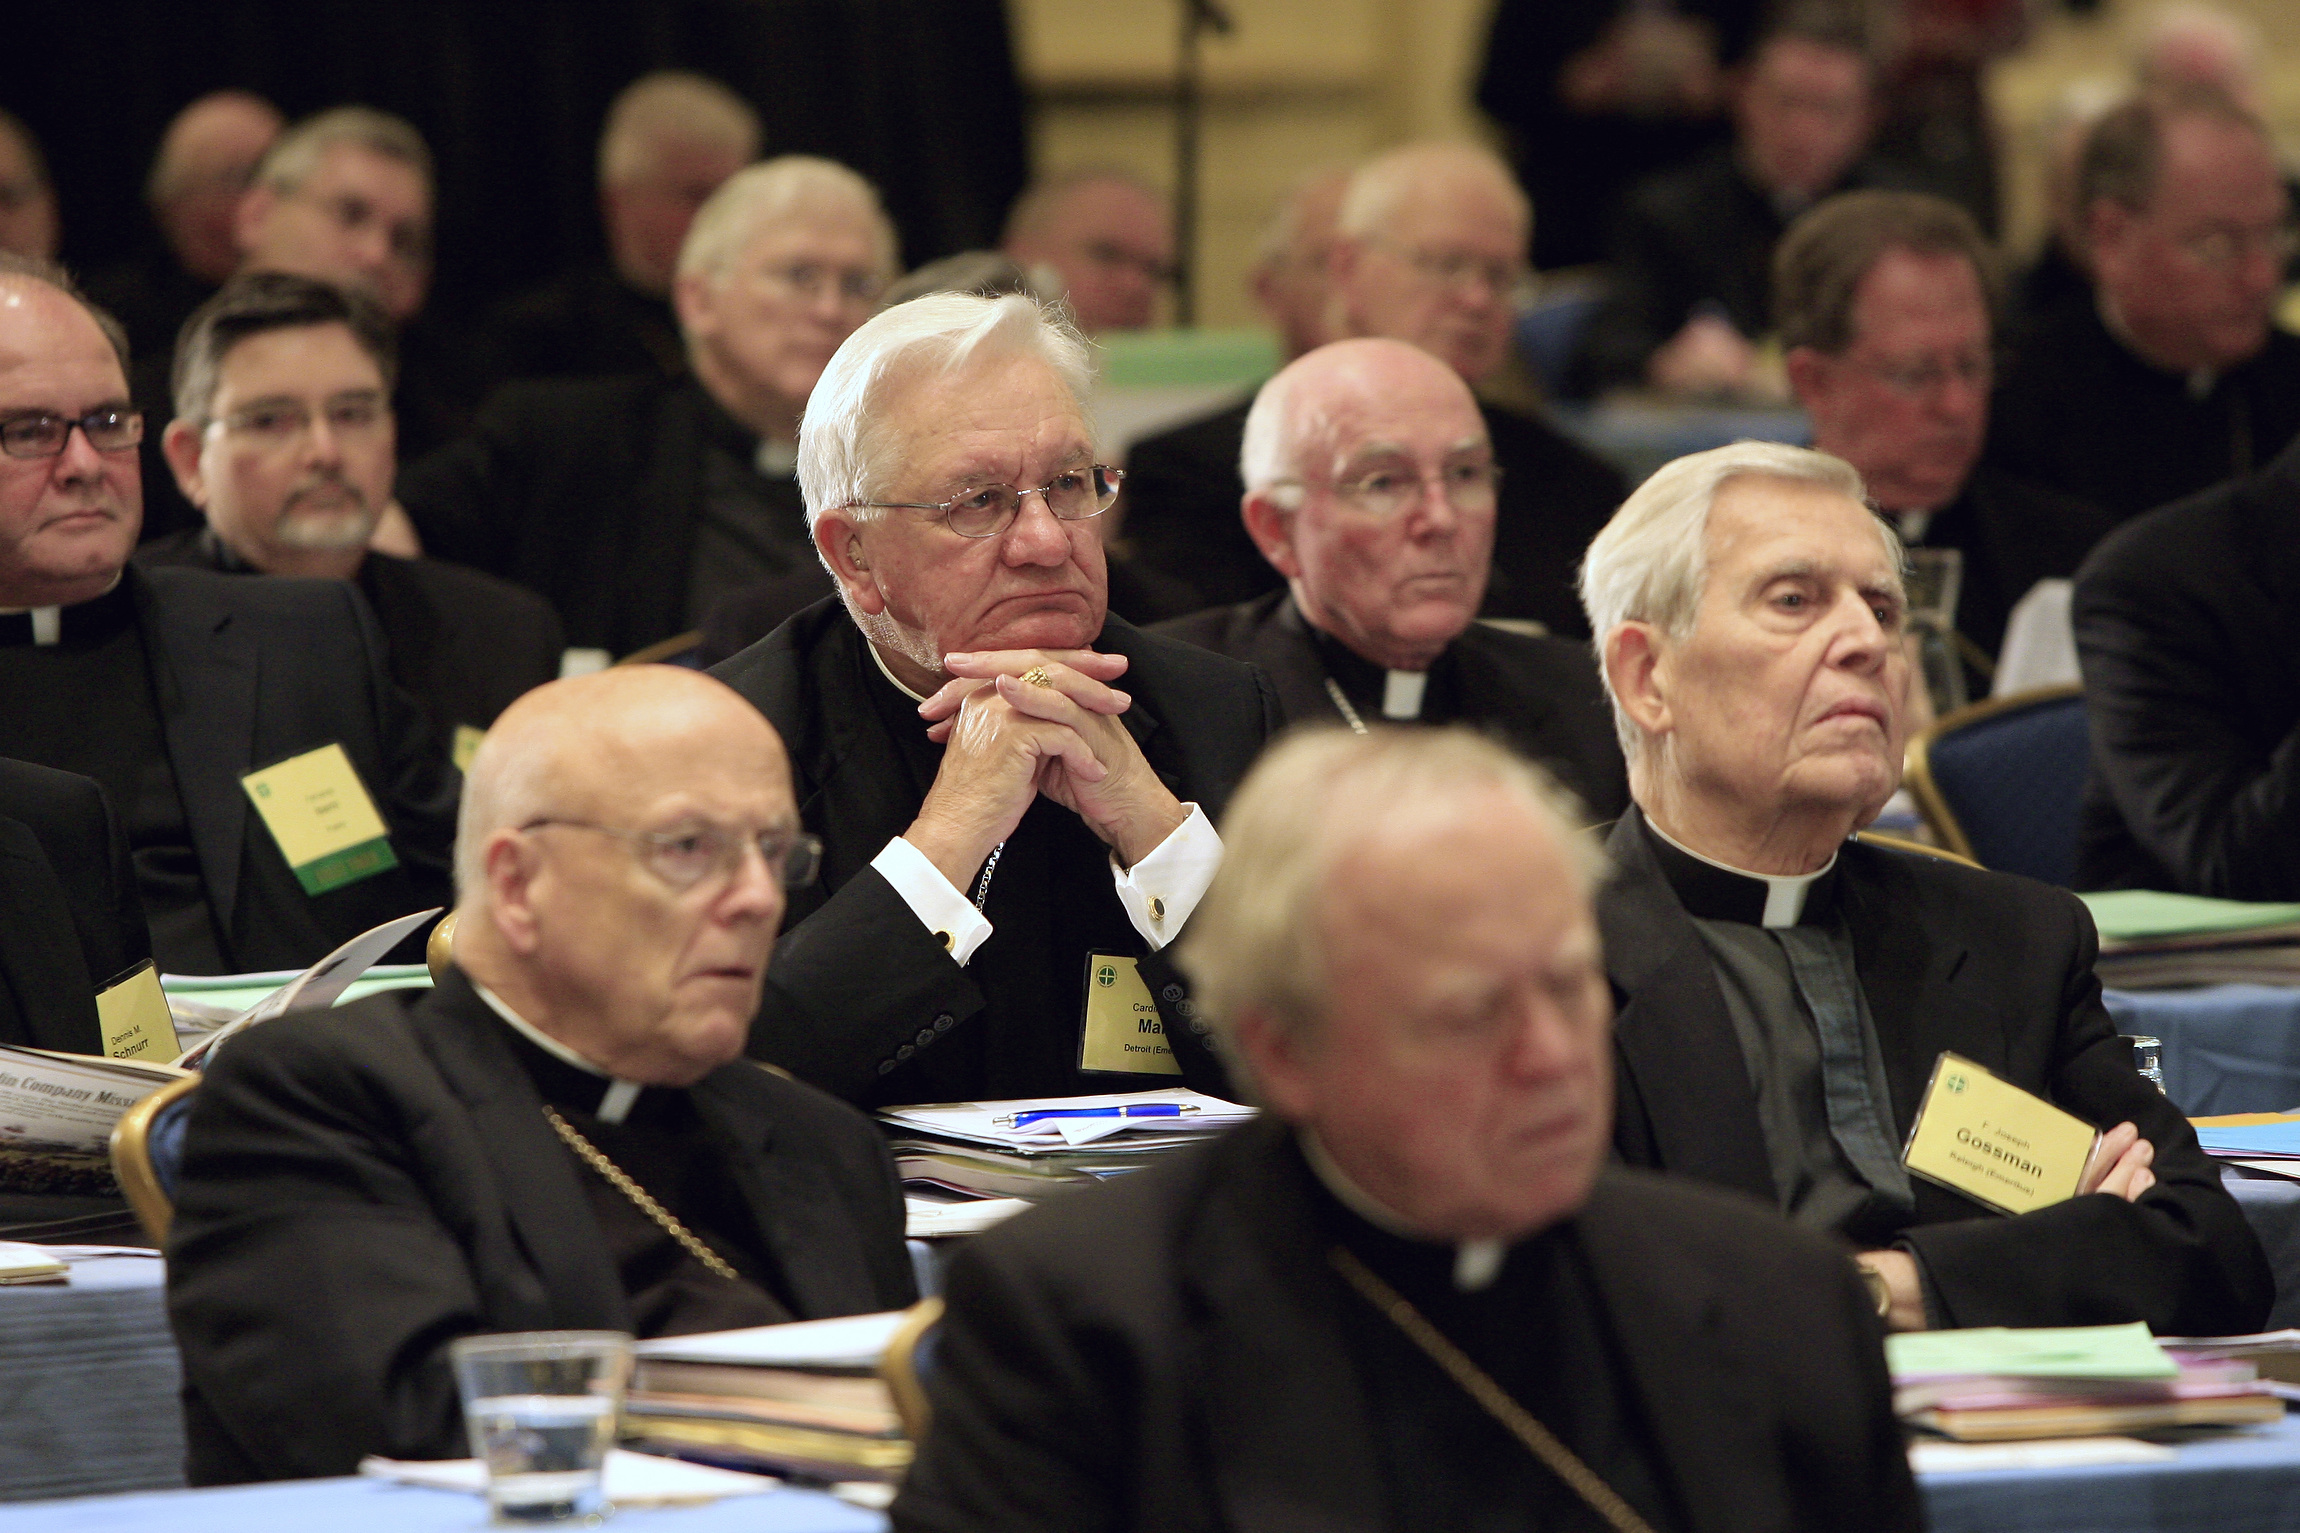 A group of Catholic Bishops